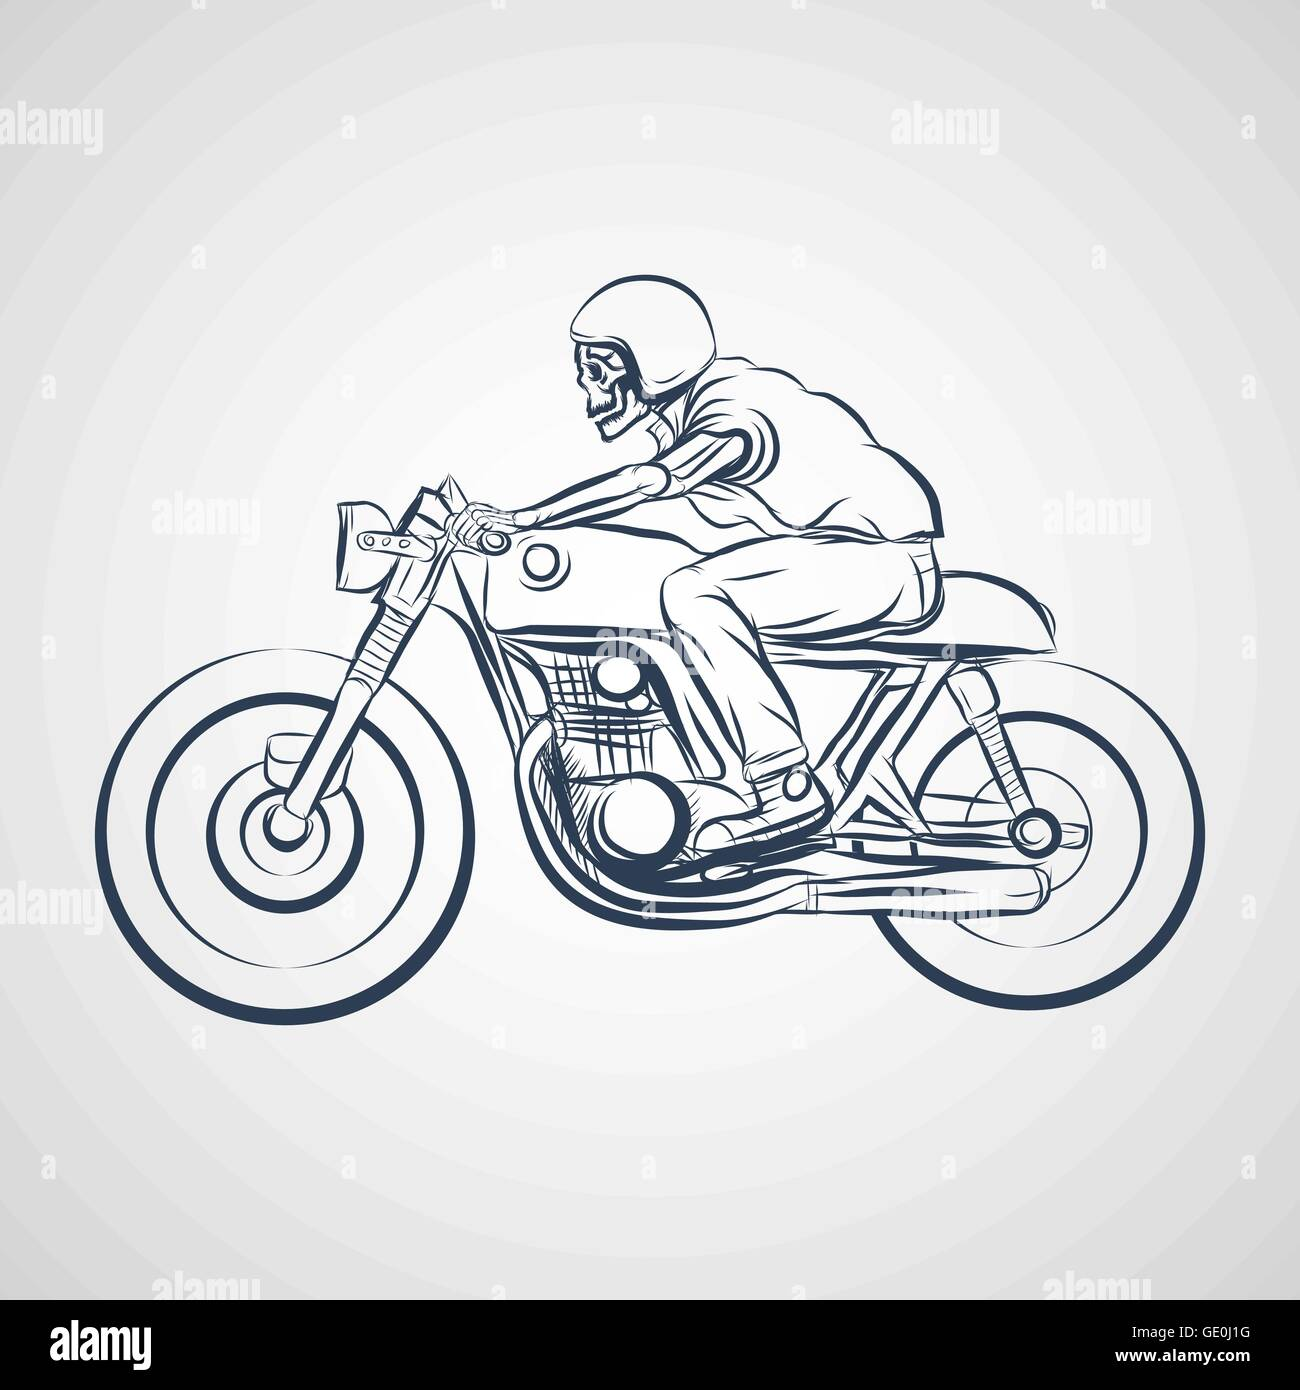 Skull Ride A Classic Cafe Racer Motorcycle Stock Vector Art